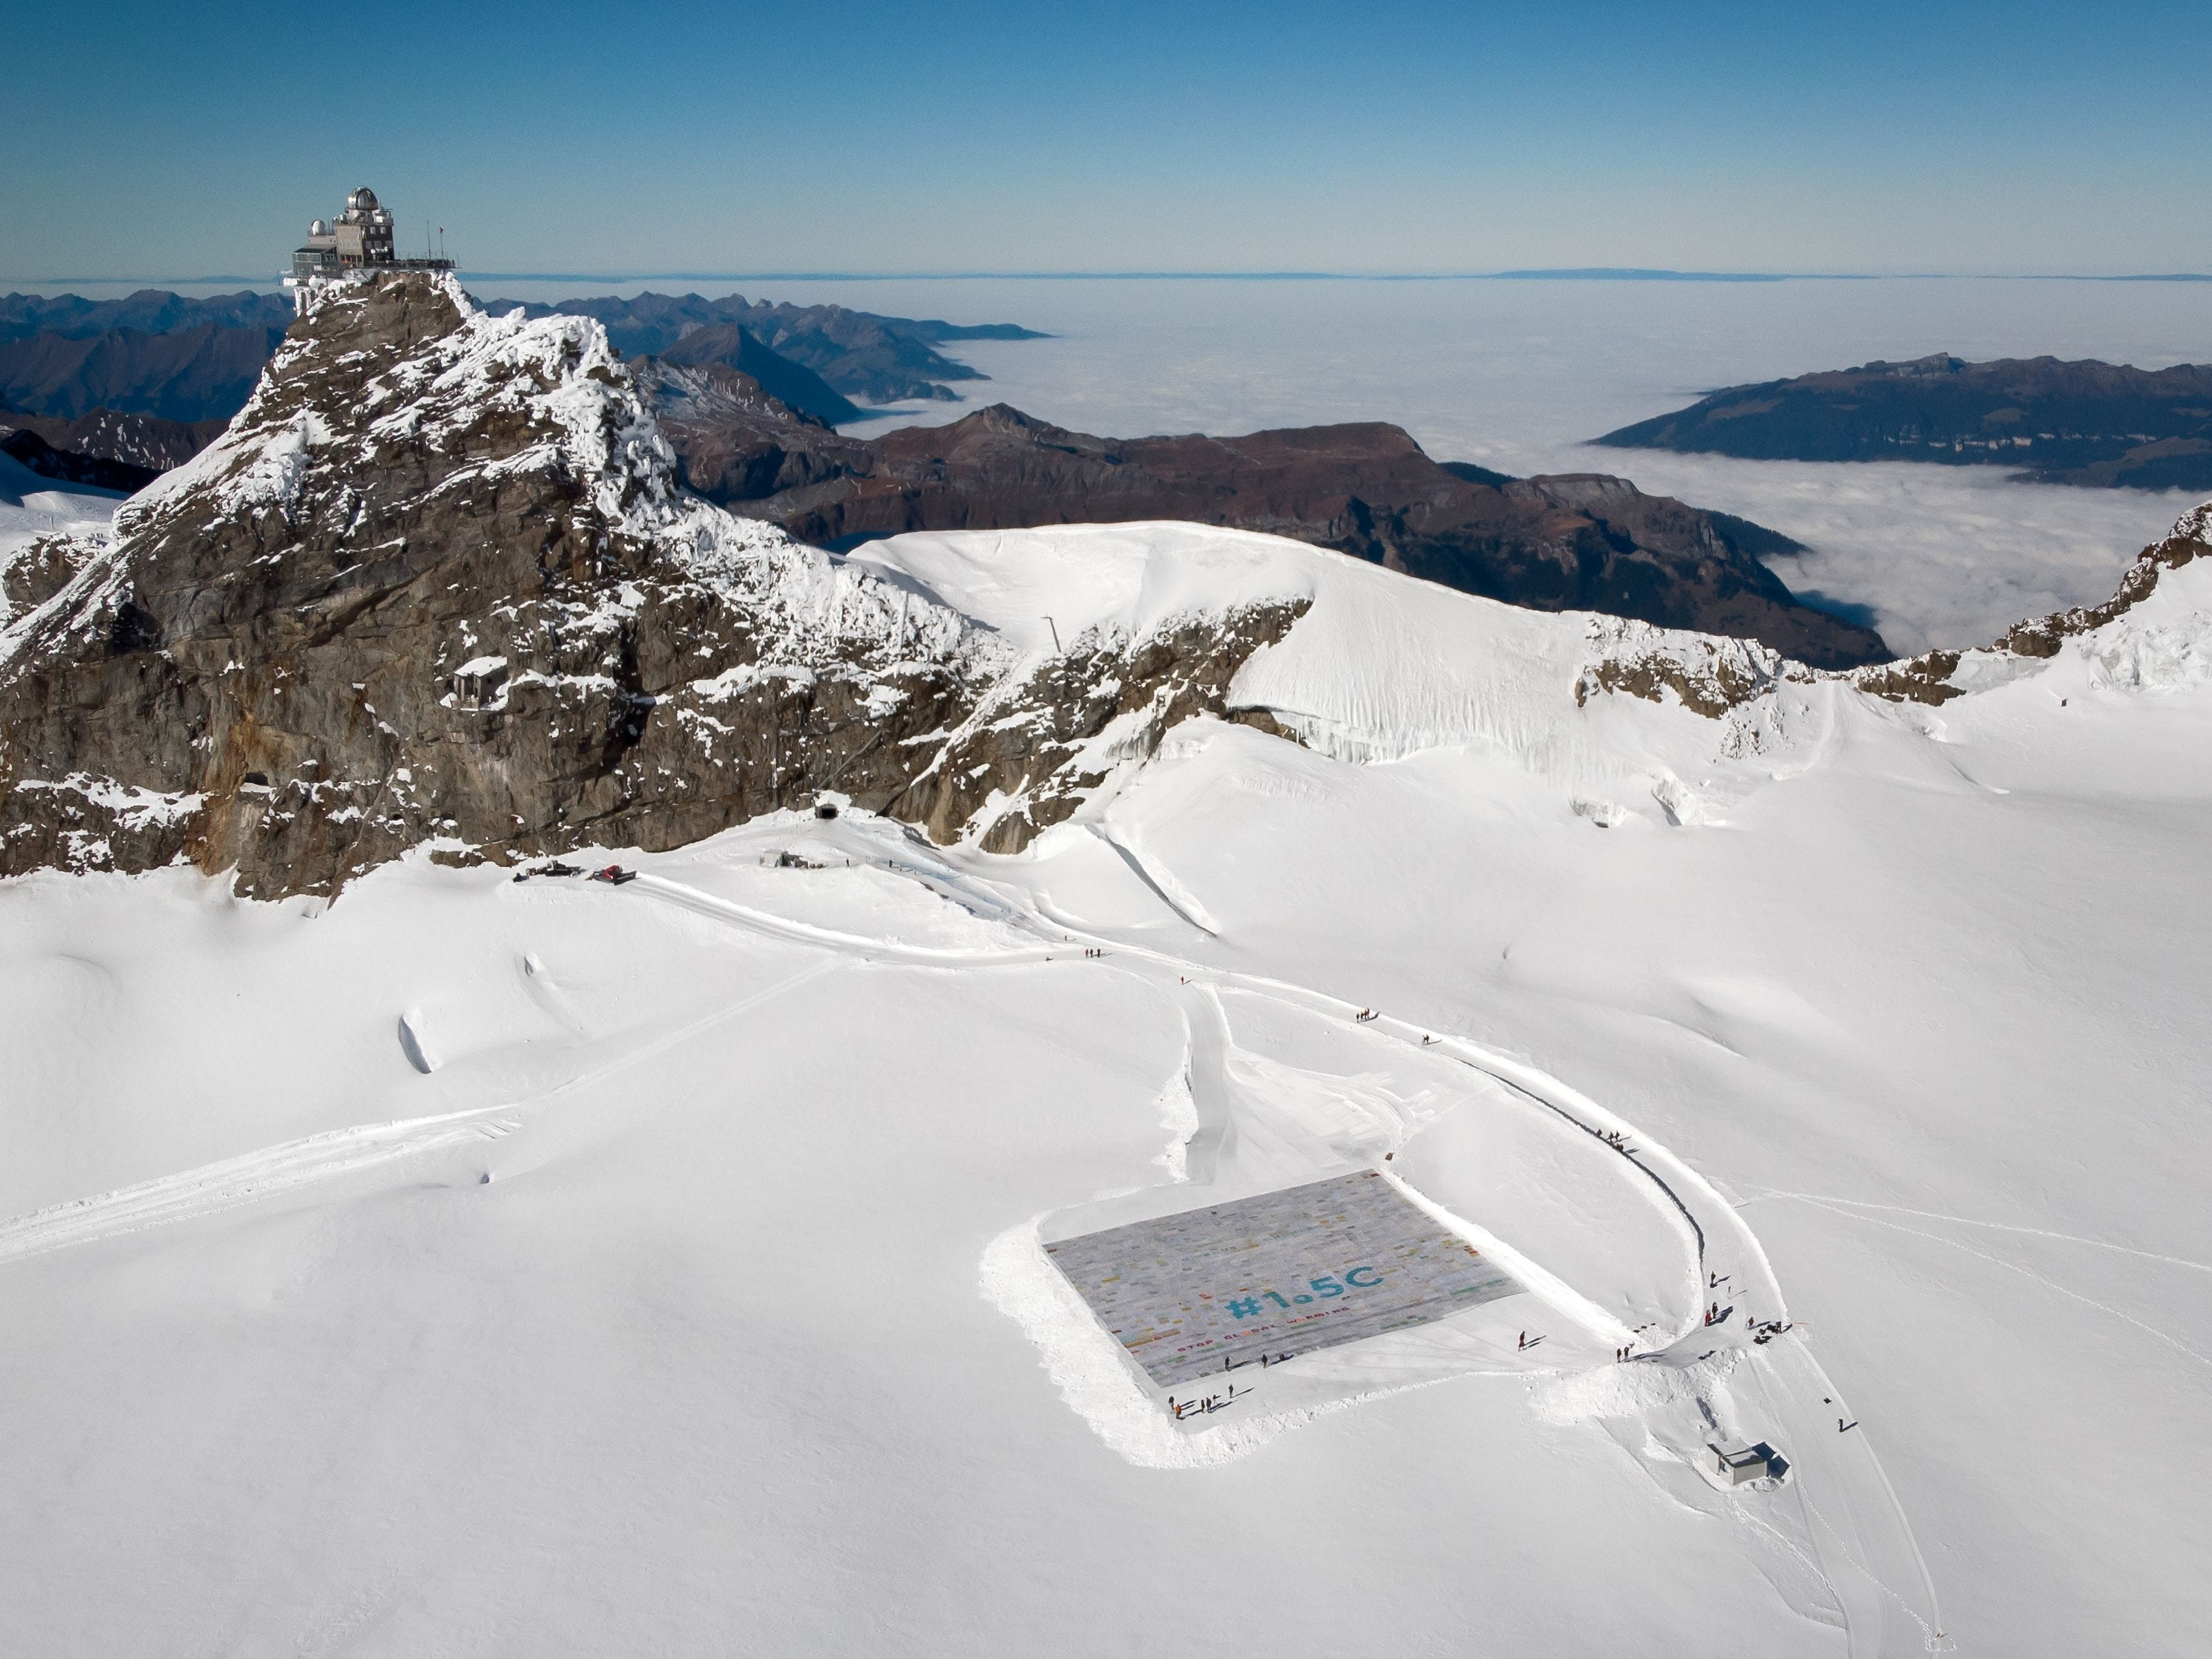 An aerial view shows a massive collage of 125,000 drawings and messages from children around the world about climate change seen rolled out on the Aletsch Glacier at an altitude of 3,400 meters near the Jungfraujoch in the Swiss Alps on Nov. 16, 2018.